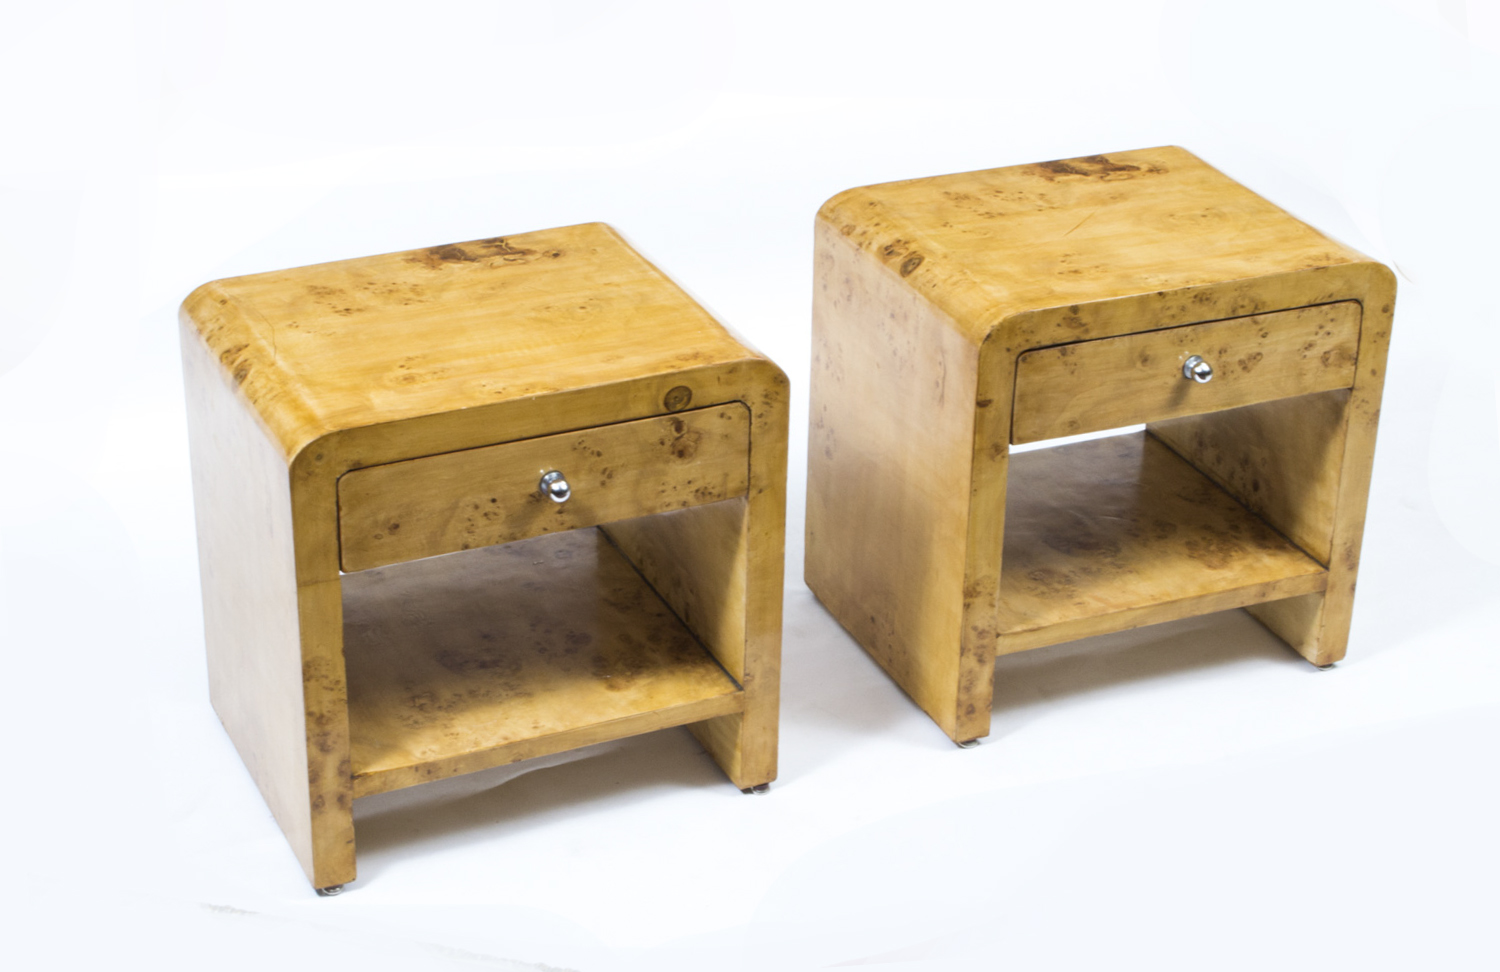 A Pair Of Art Deco Cabinets In Birdseye Maple | Art Deco Bedside Cabinets |  Ref. No. 01487a